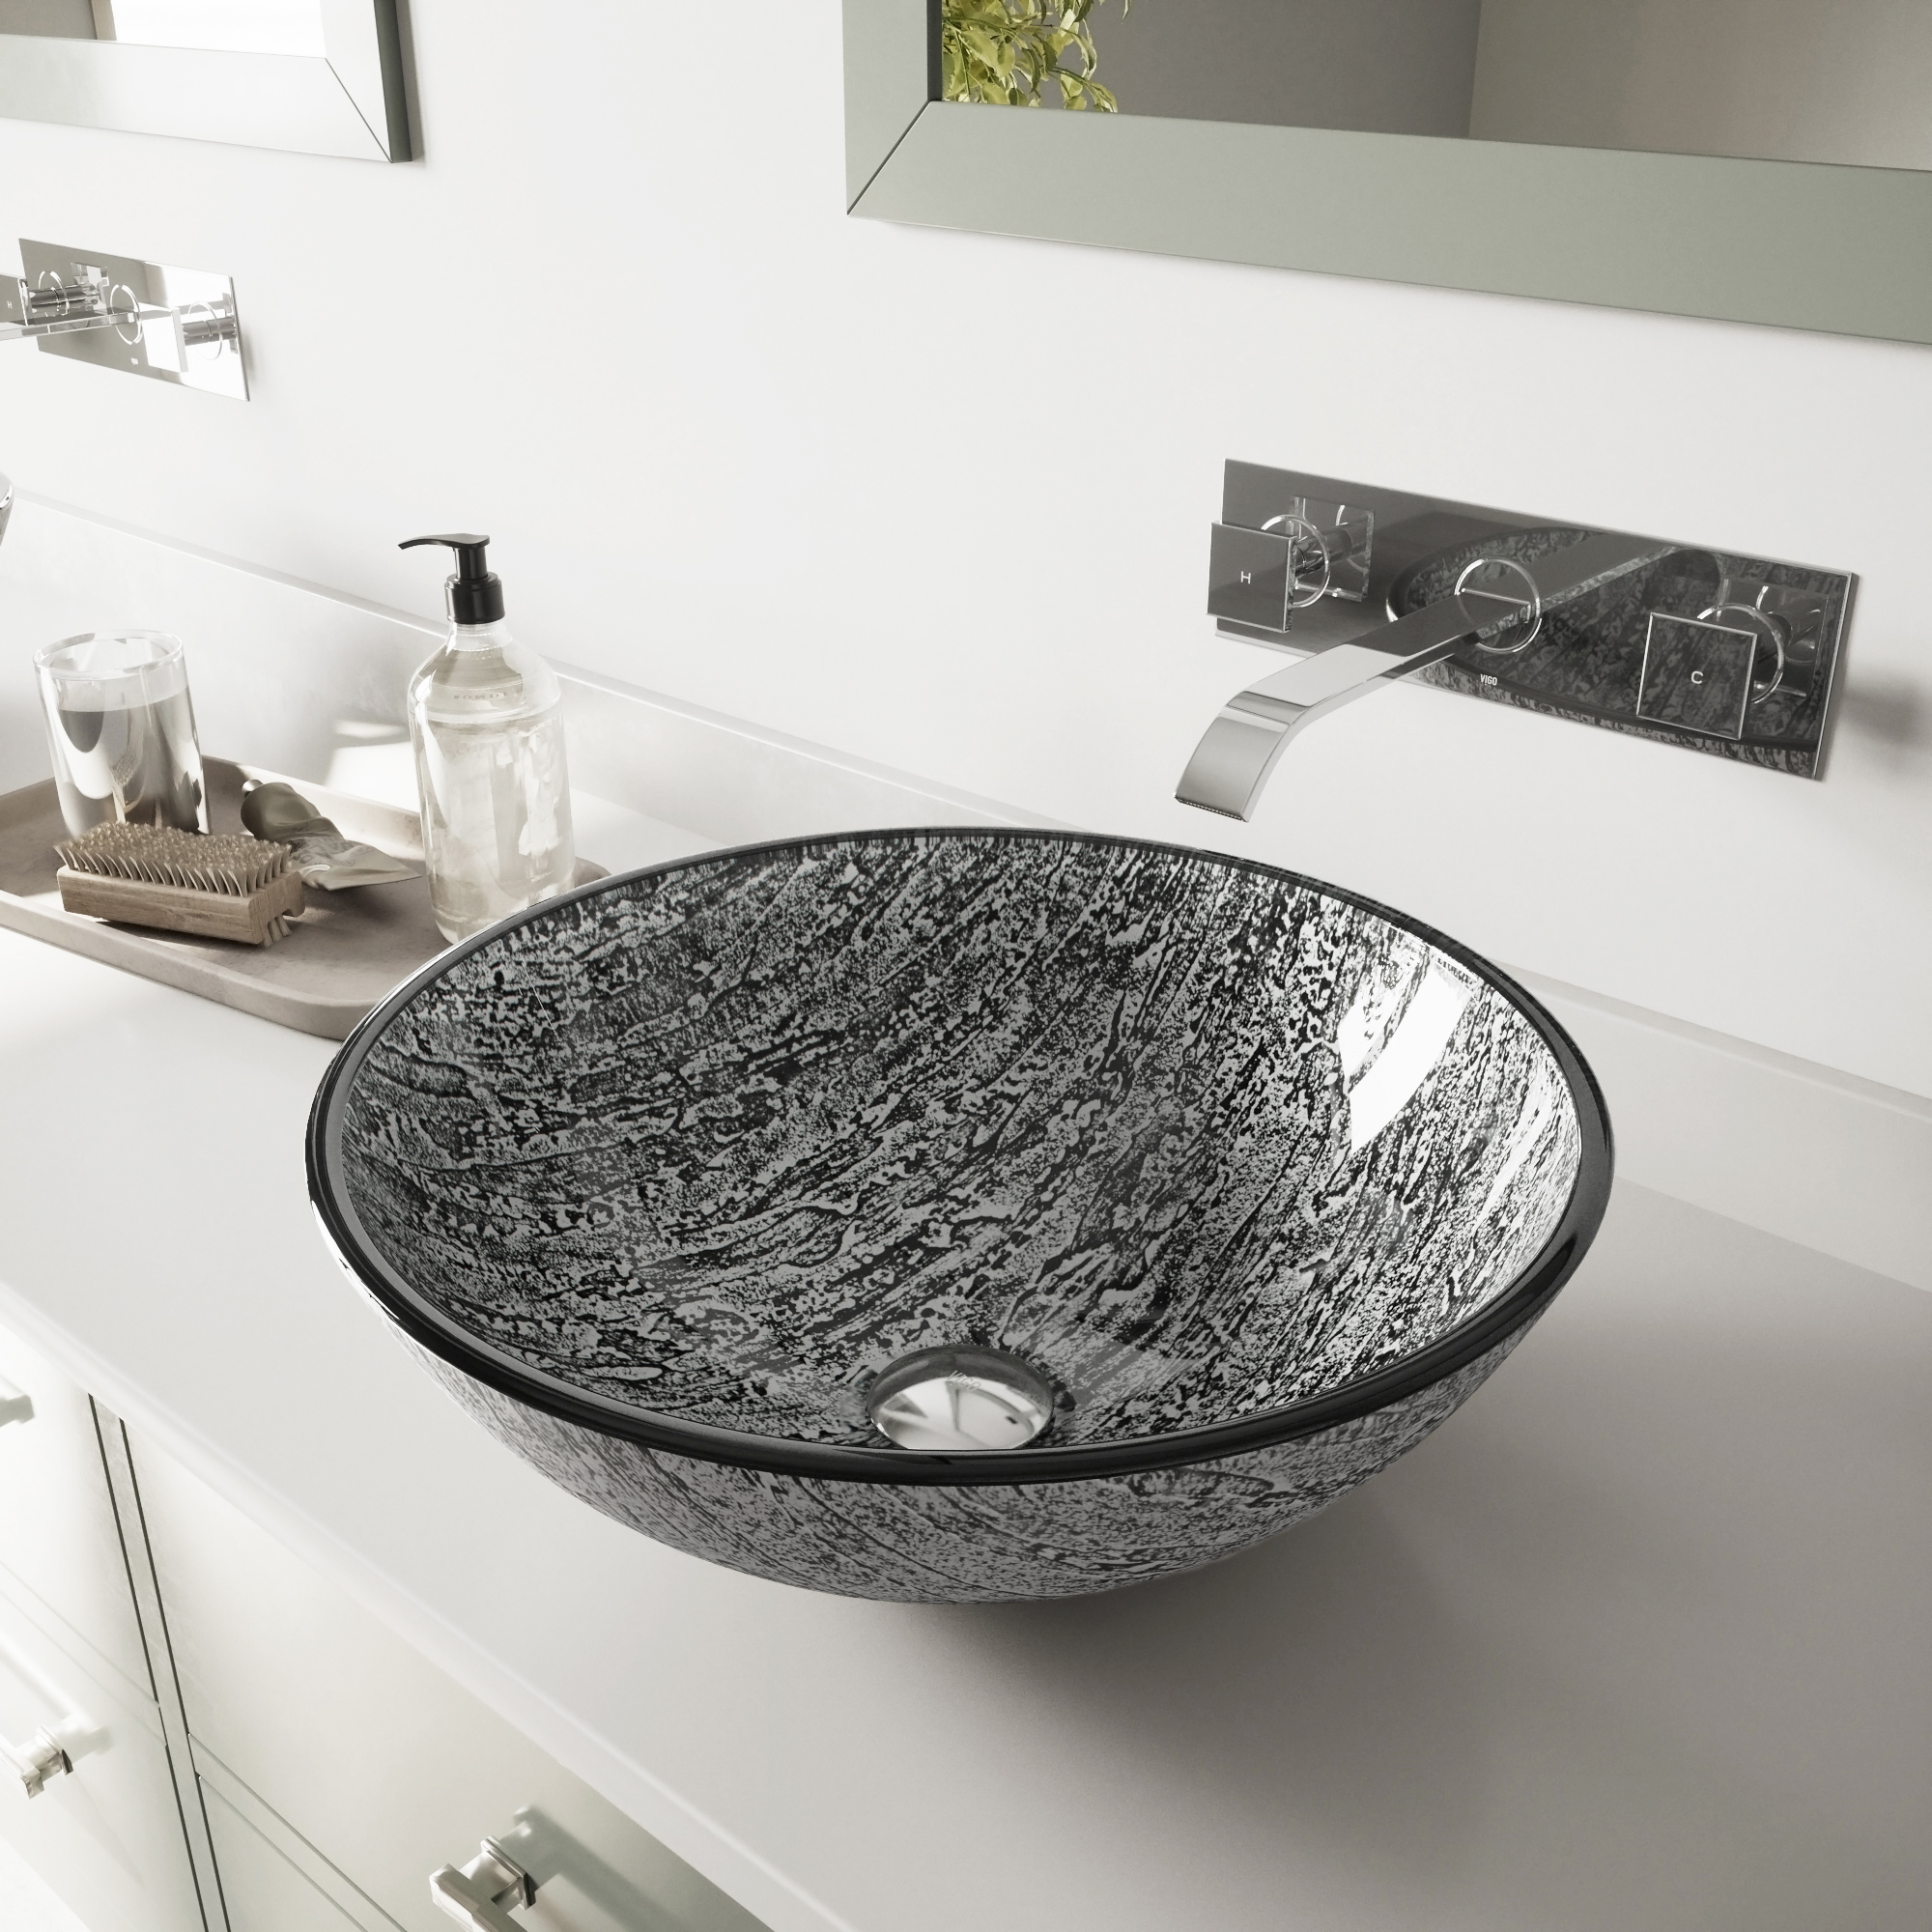 Vigo Titanium Glass Vessel Bathroom Sink With Faucet Lowe S Canada